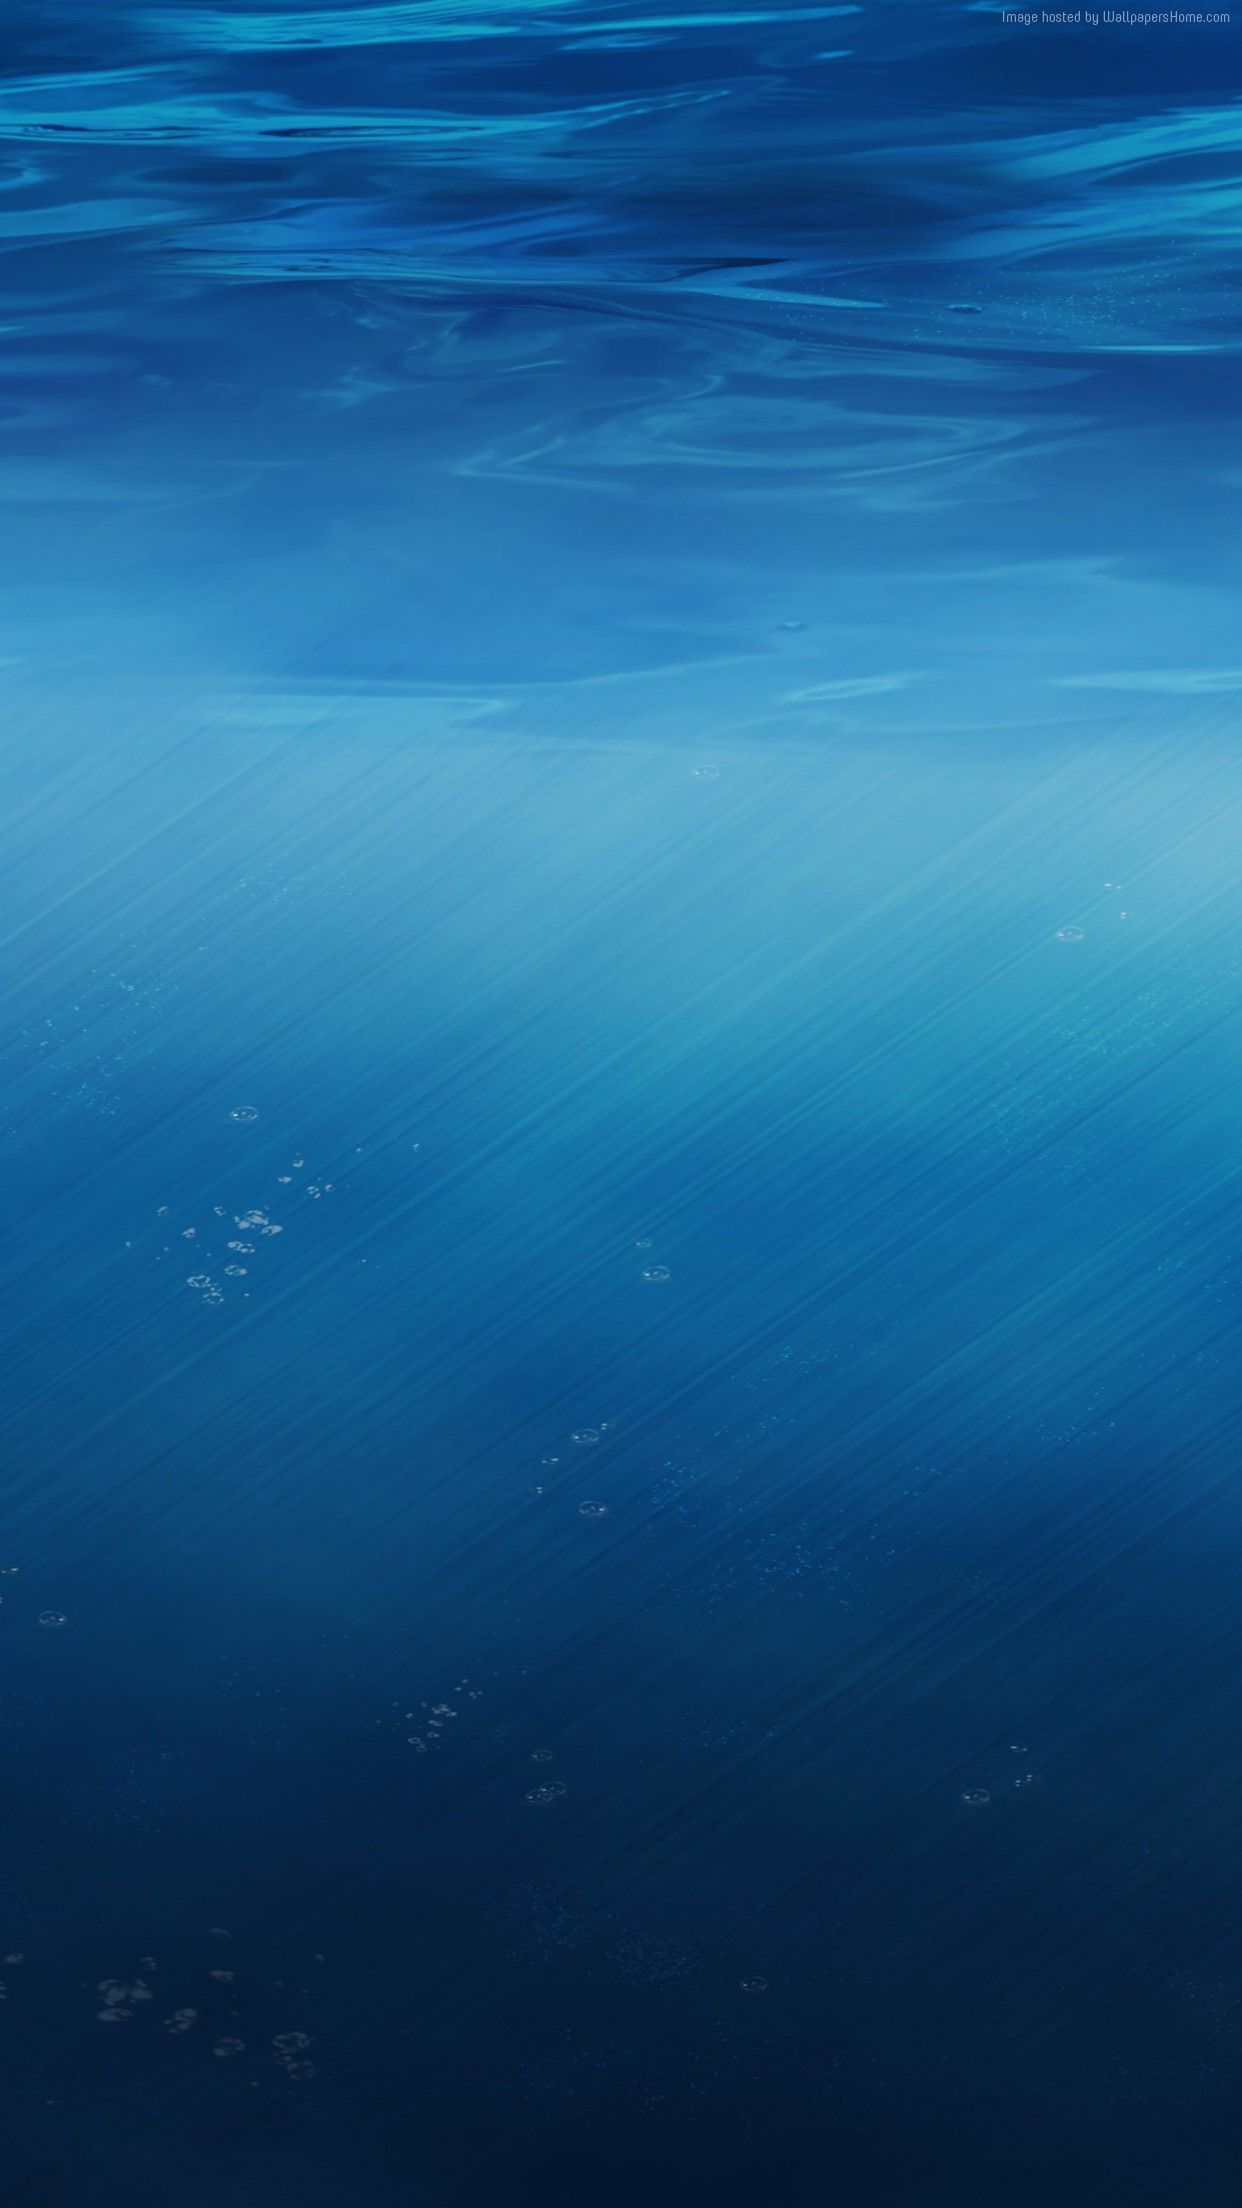 Blue Water Ocean Sea Wallpaper Iphone Clean Colour Minimal Photography Iphone 7 Iphone 6 Underwater Wallpaper Wallpaper Underwater